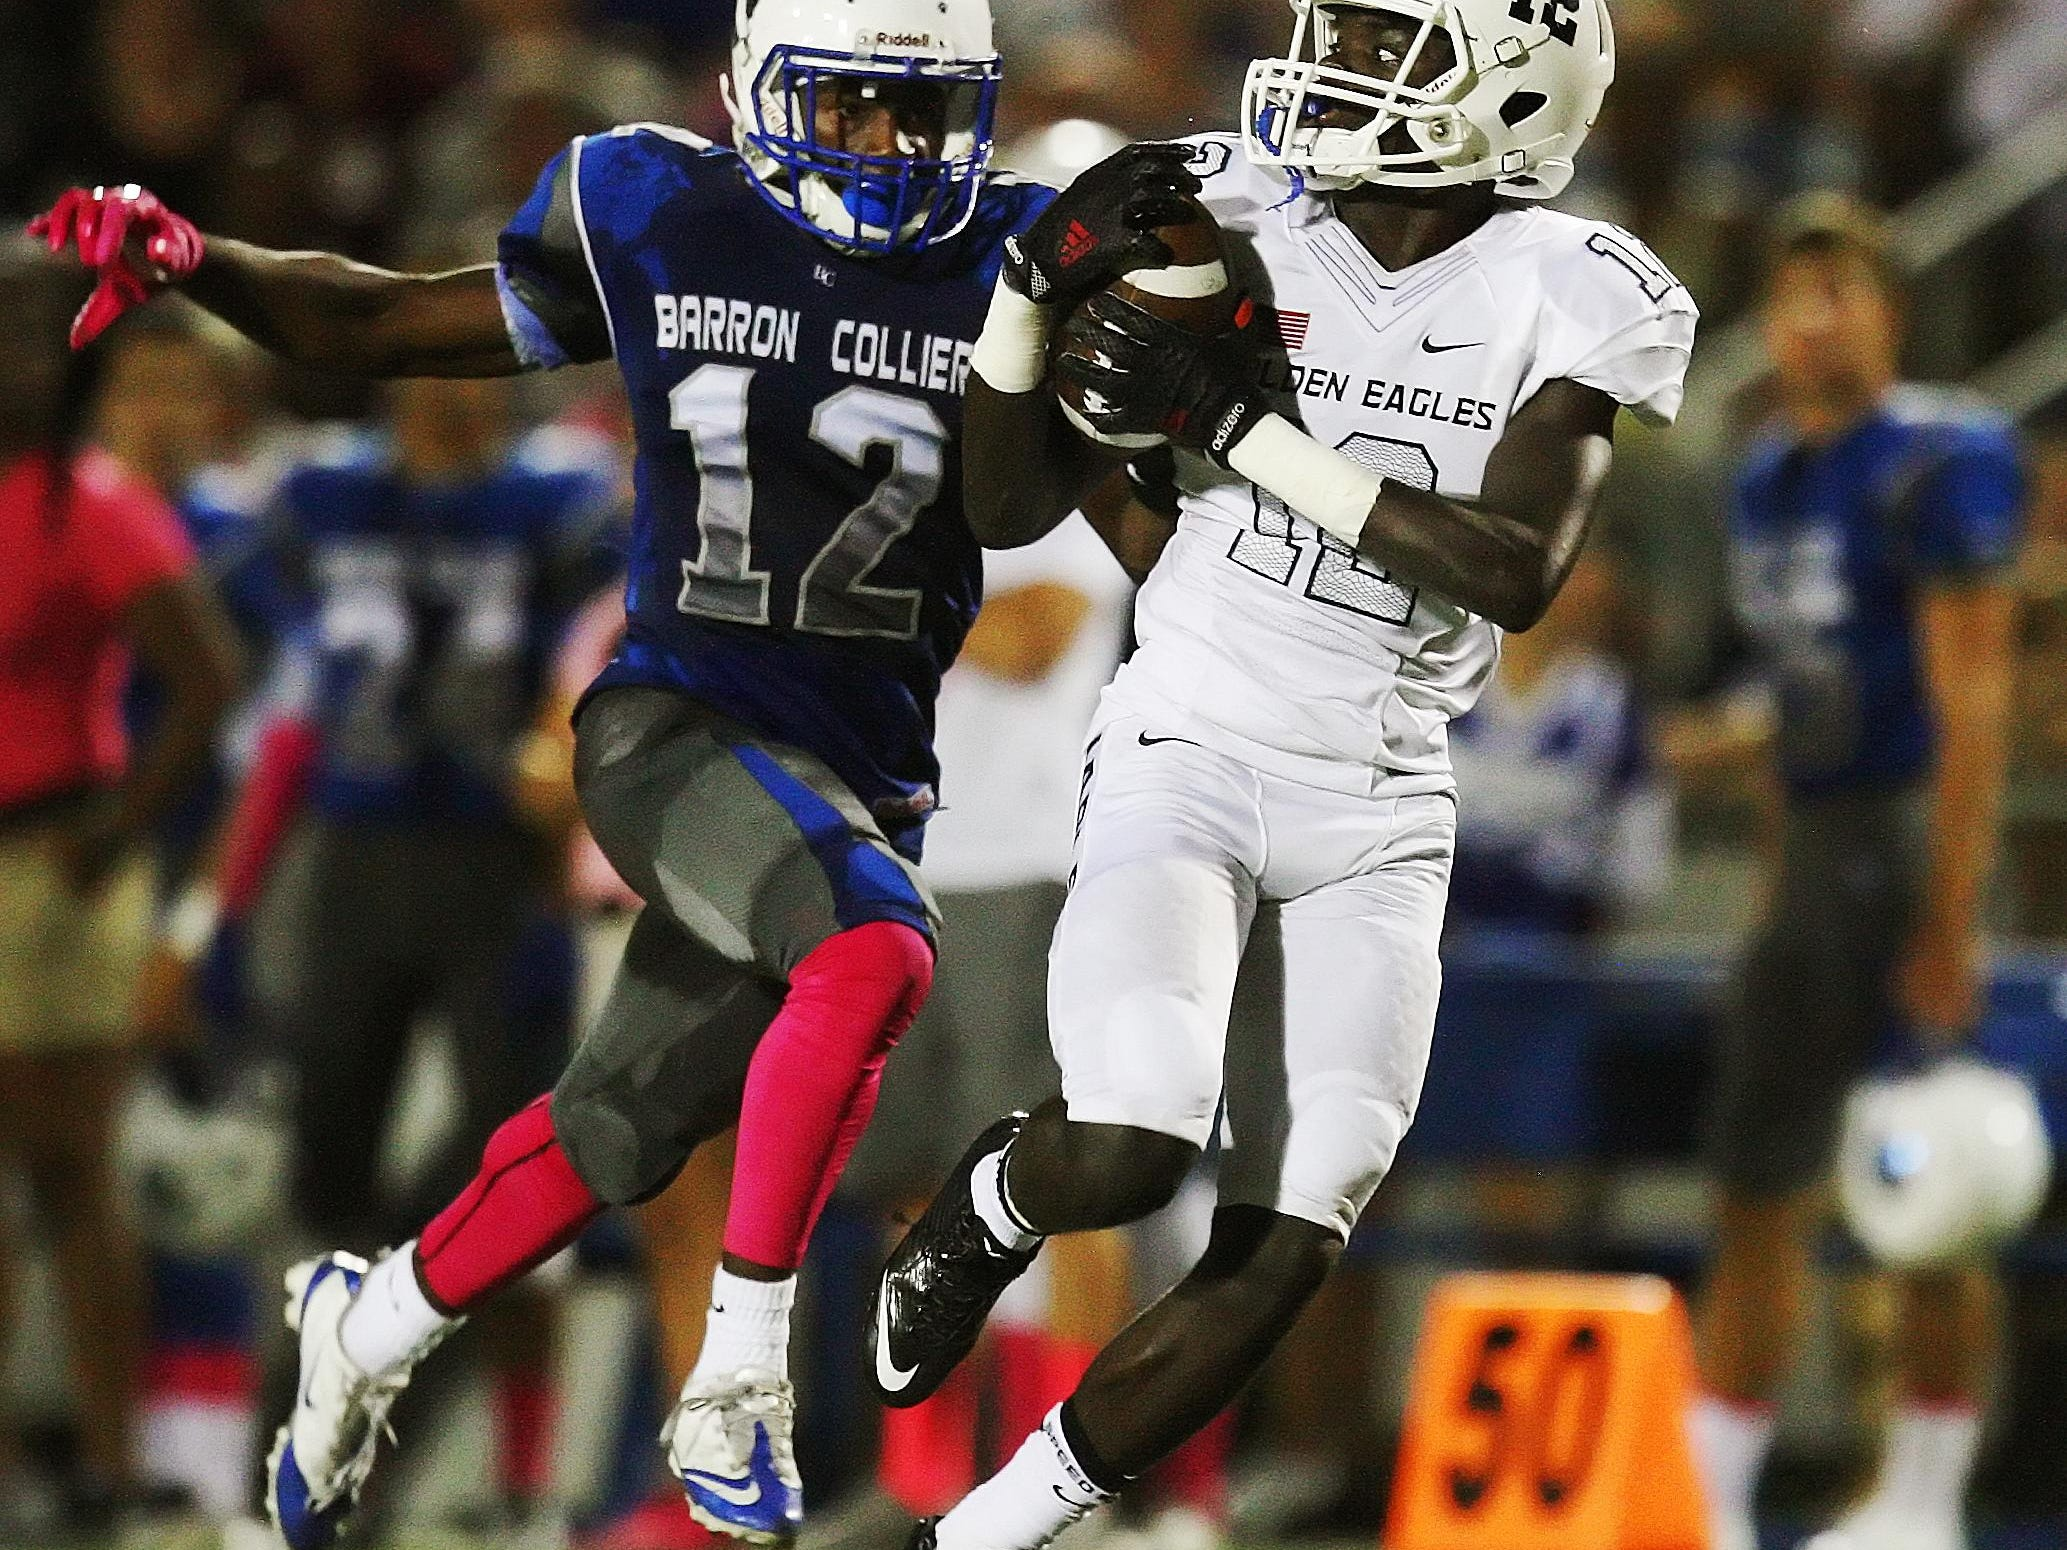 Naples High School's Woody Theork catches a pass against Barron Collier's Dana Brown on Friday at Barron Collier High School in Naples.